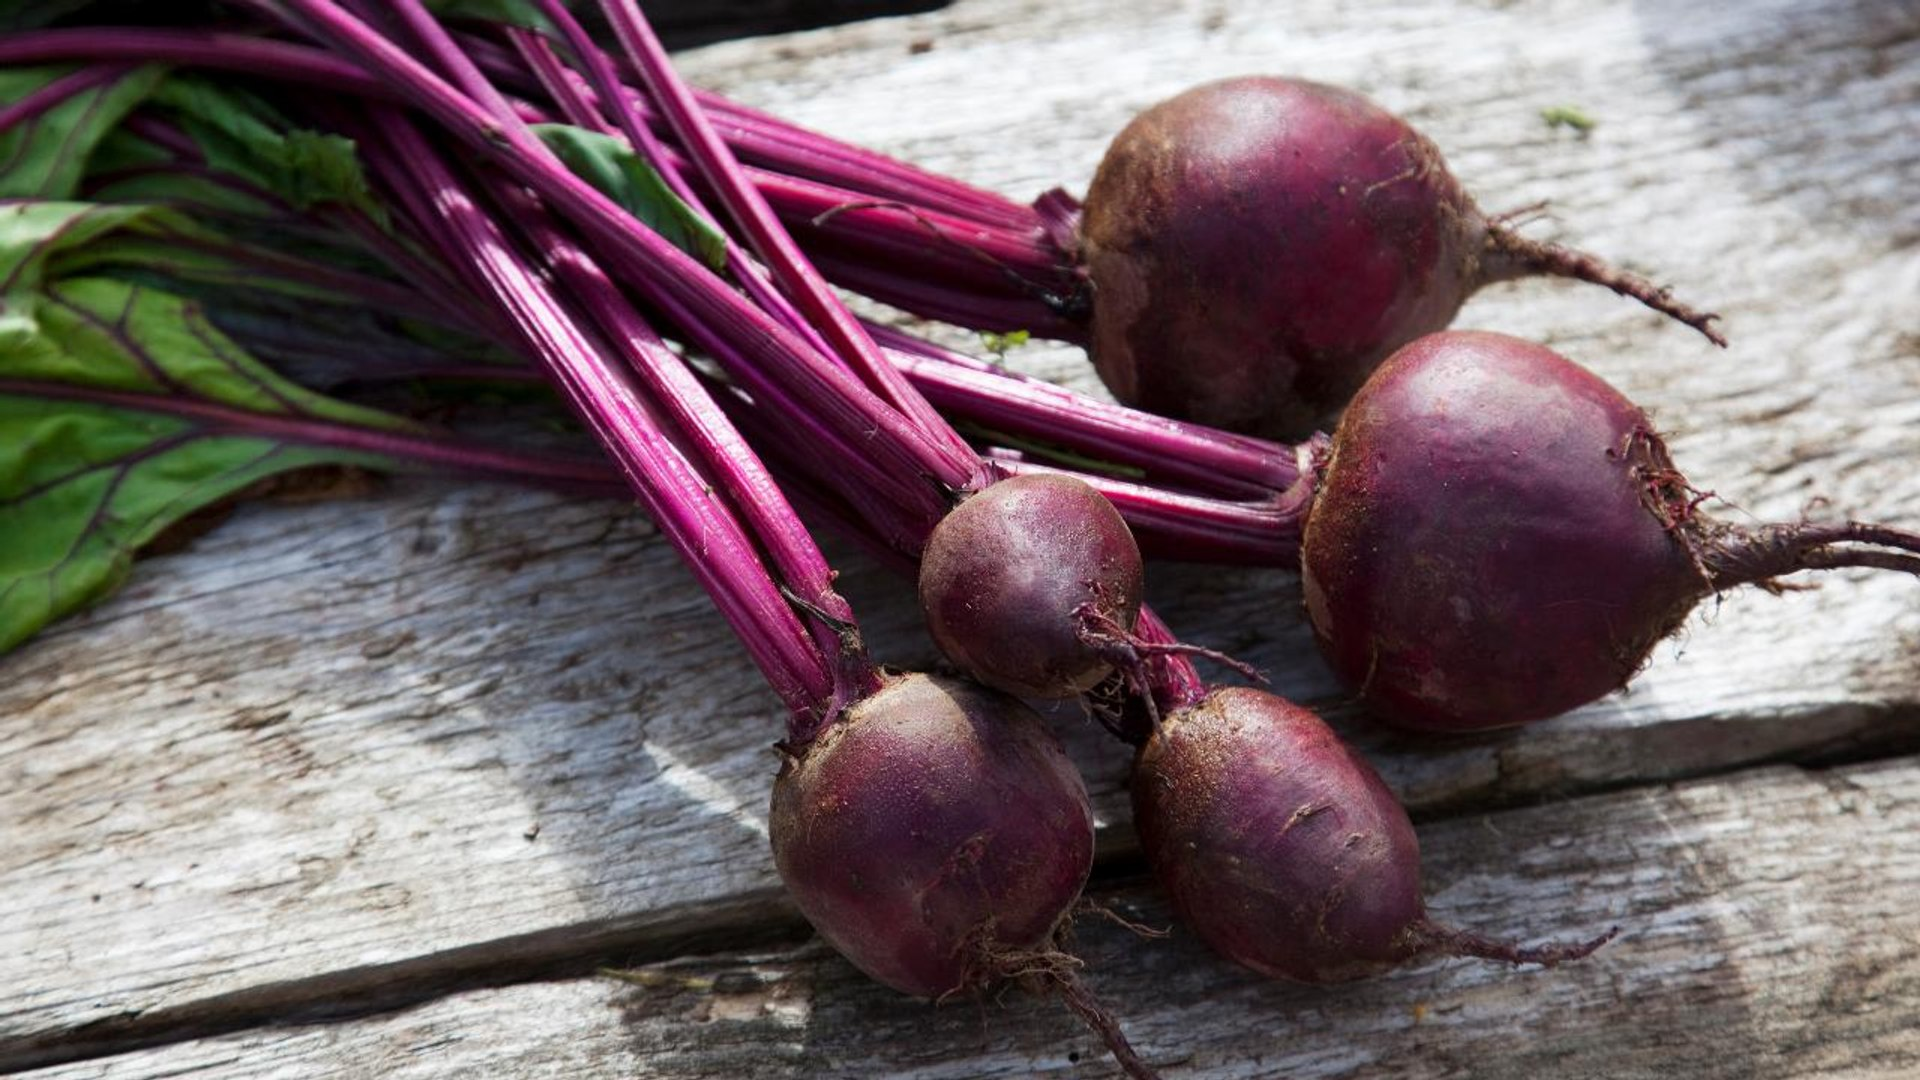 10 Easy Ways to Cook With Beets